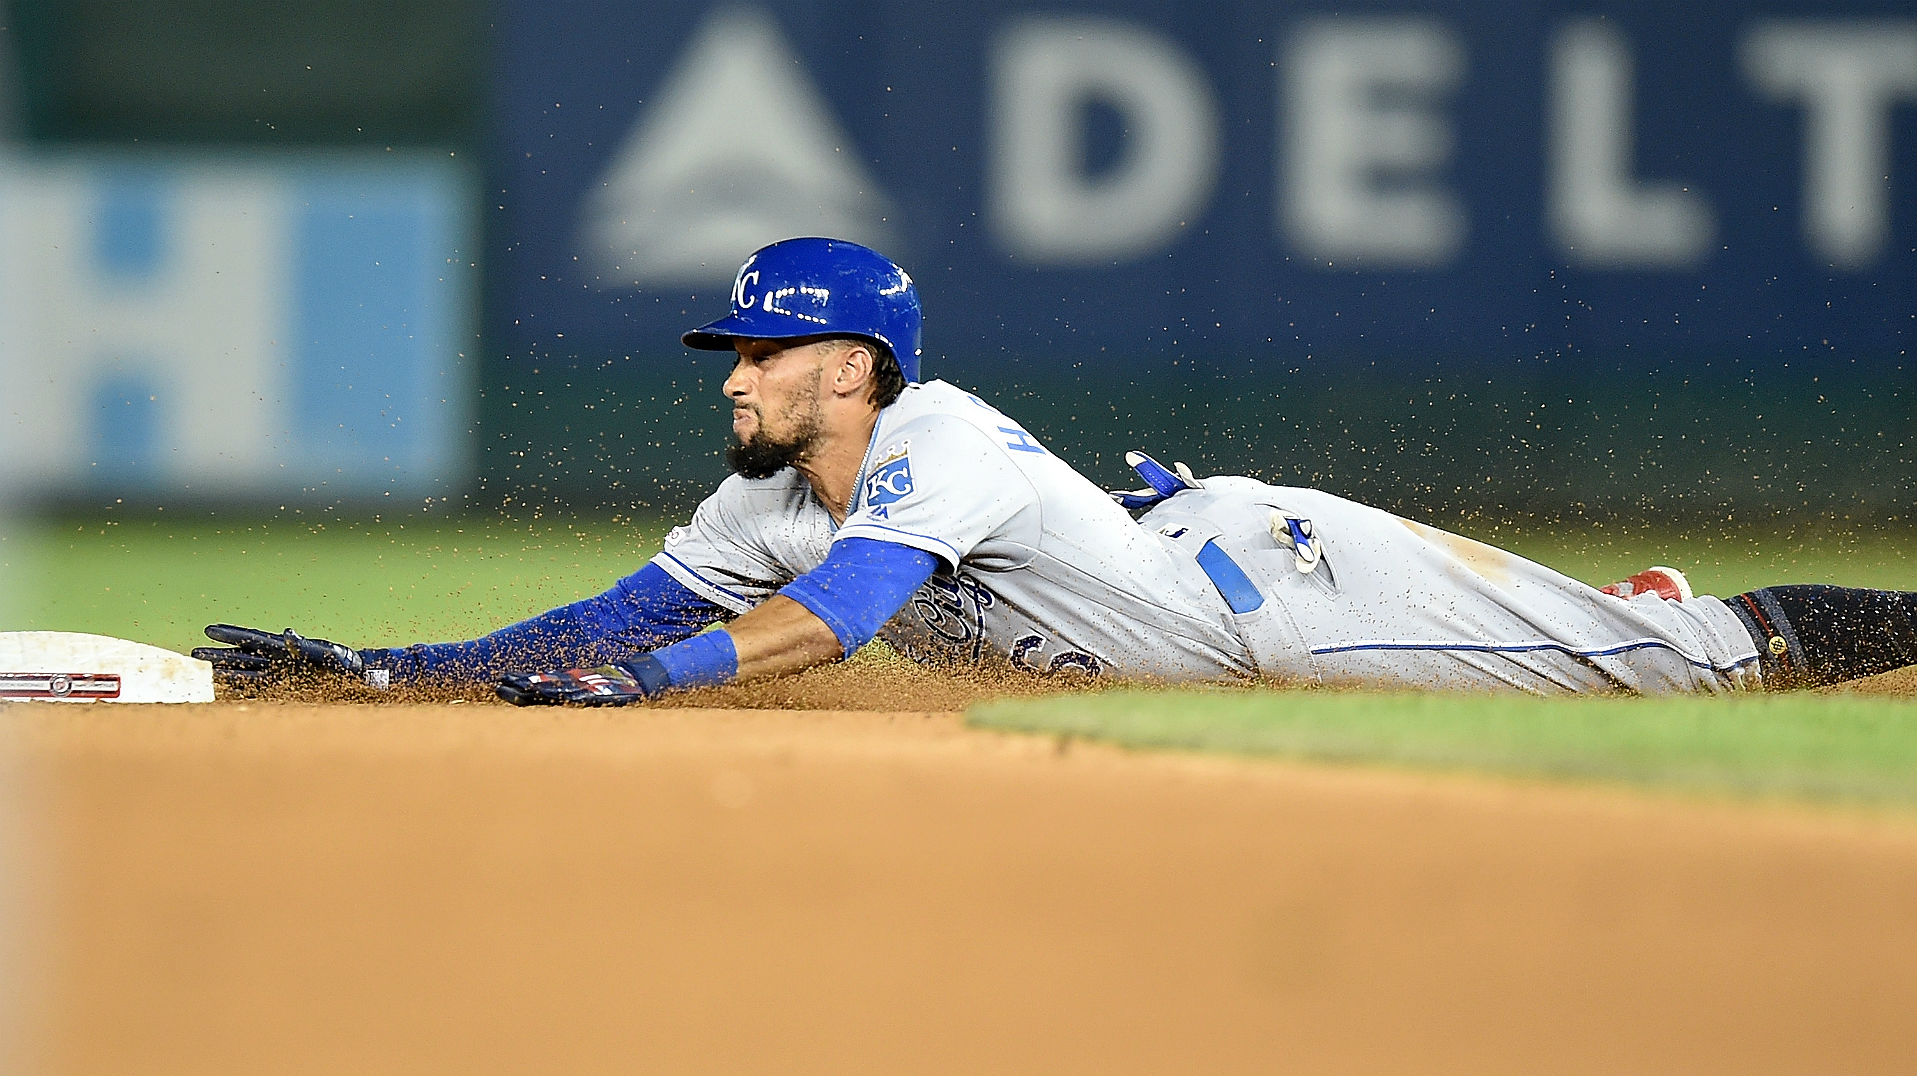 Billy Hamilton says joining Braves is 'like Christmas again'